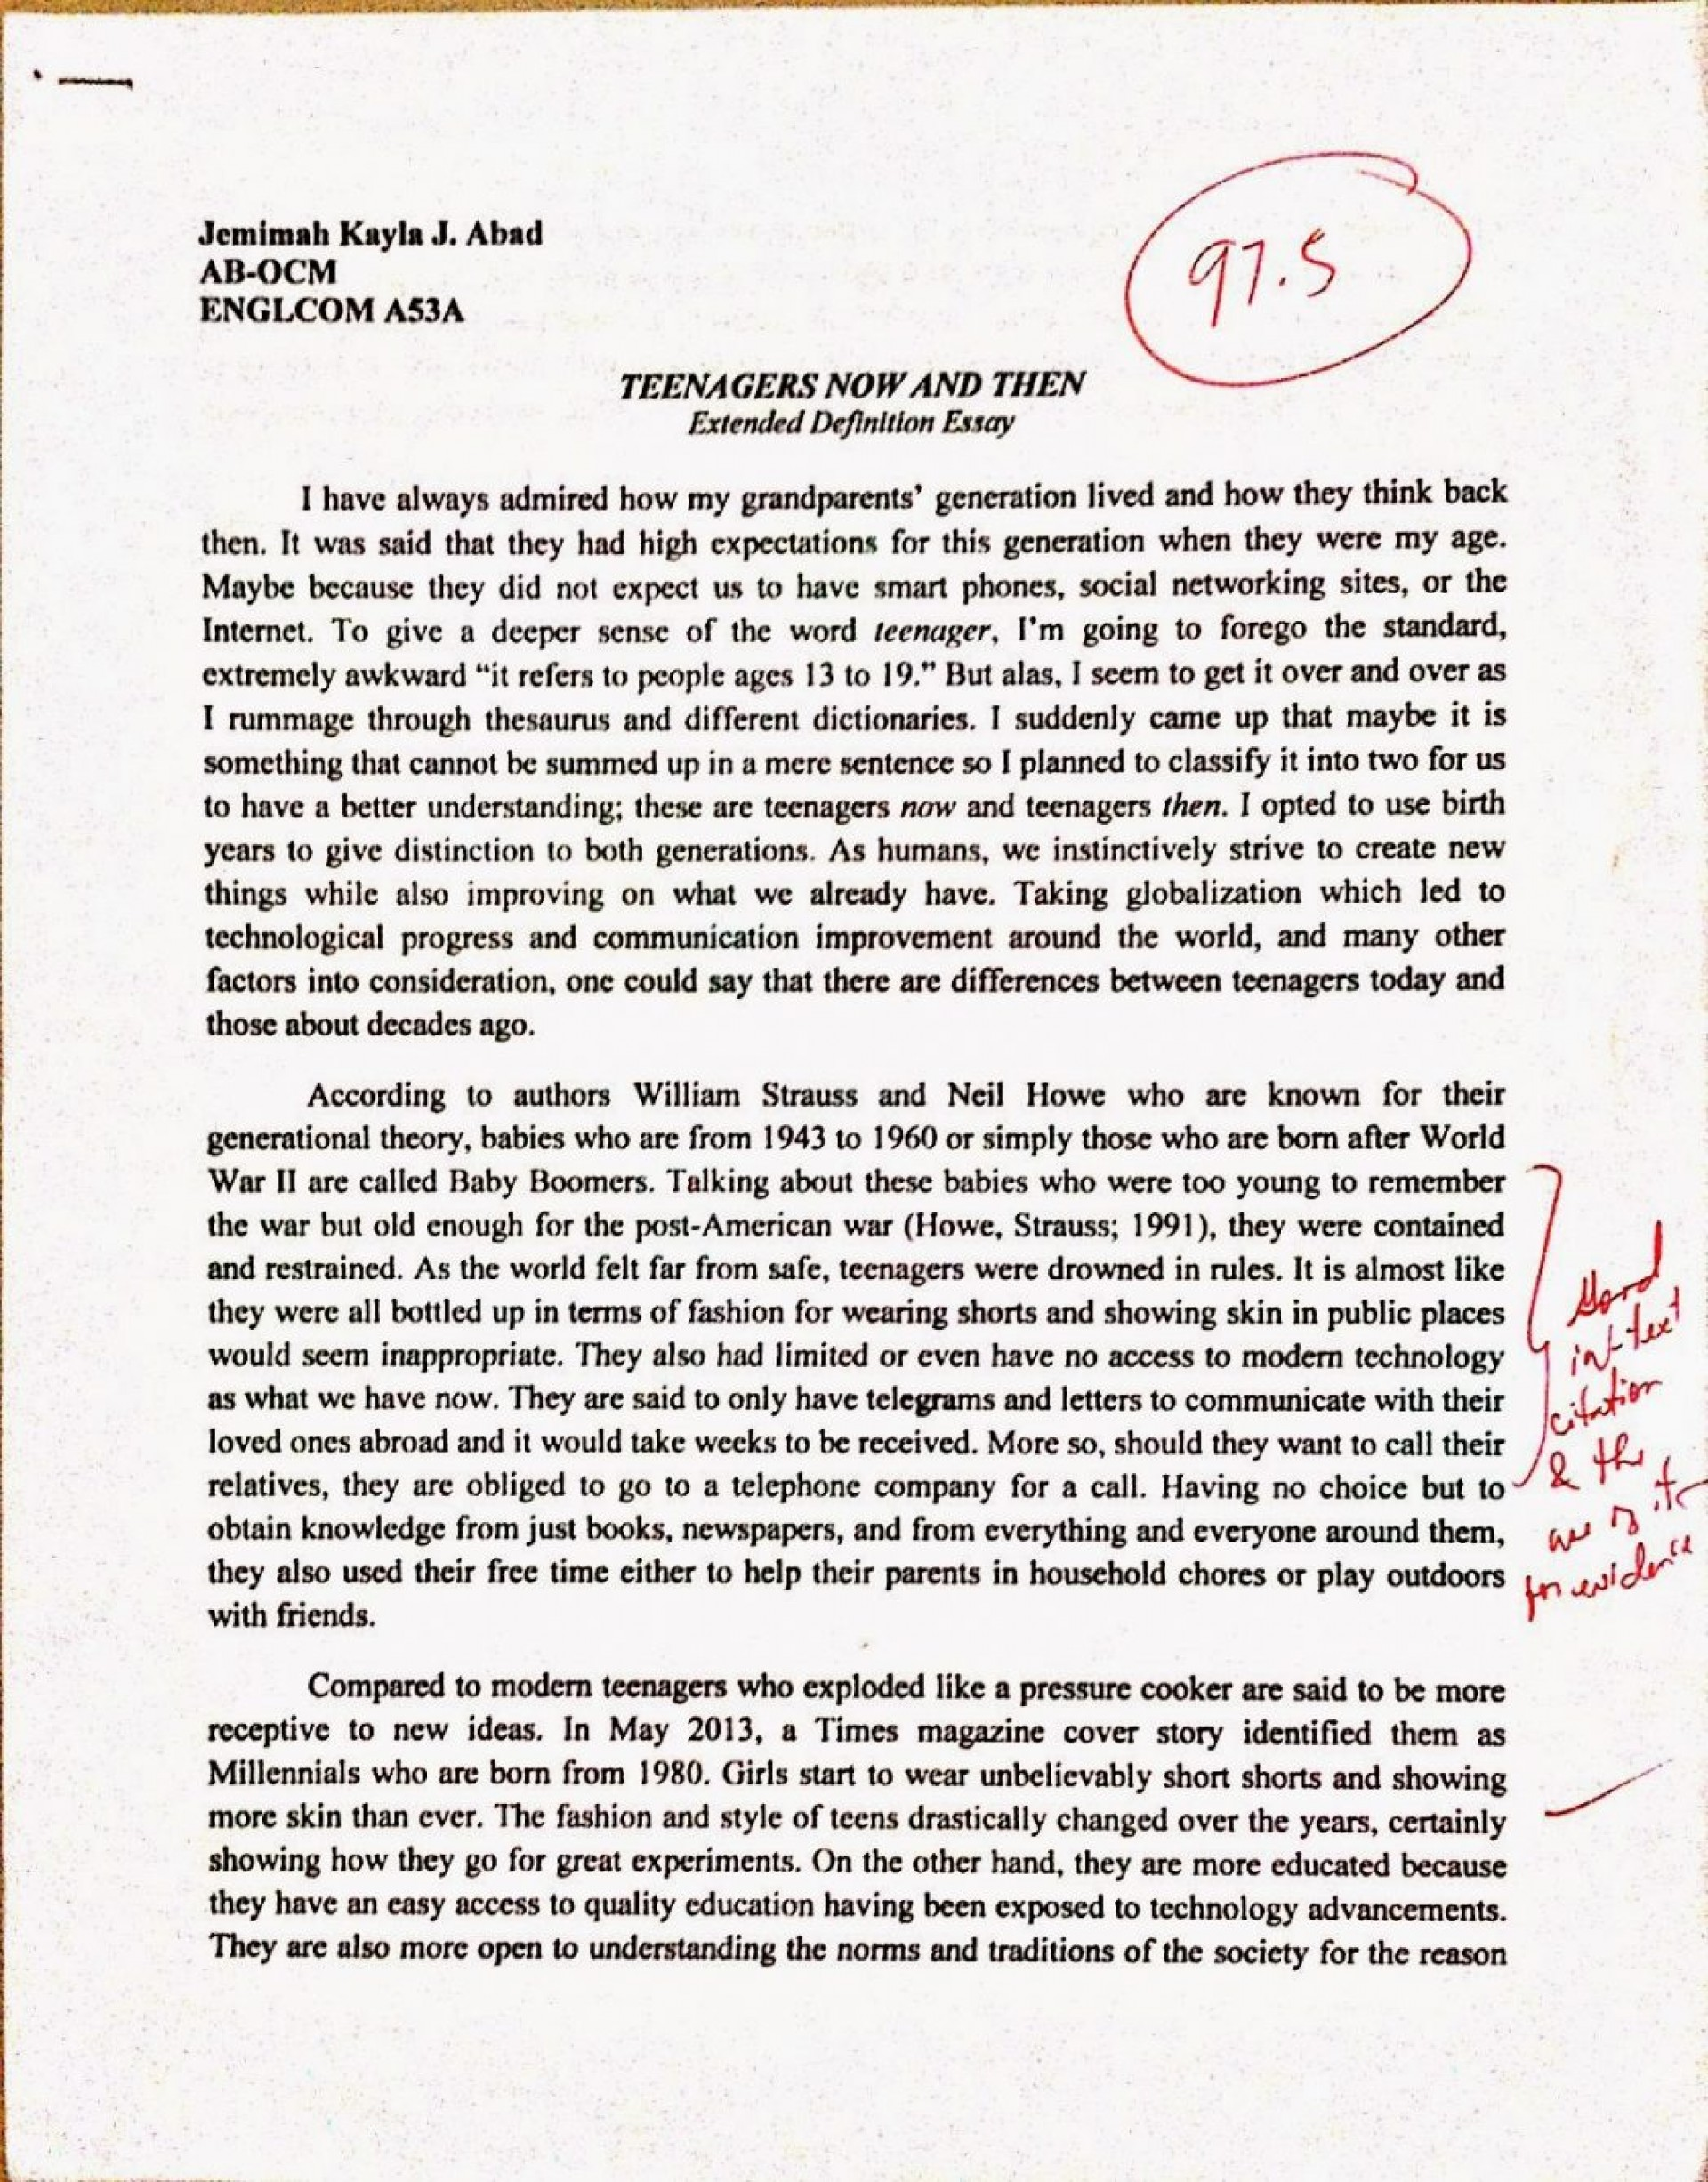 020 Persuasive Essay Definition Sample Argumentative Tip Outline Tips Writing Good Pdf Gre Ielts Icse Ap Lang And Tricks 1048x1339 Fearsome Wikipedia Define Format & Examples 1920